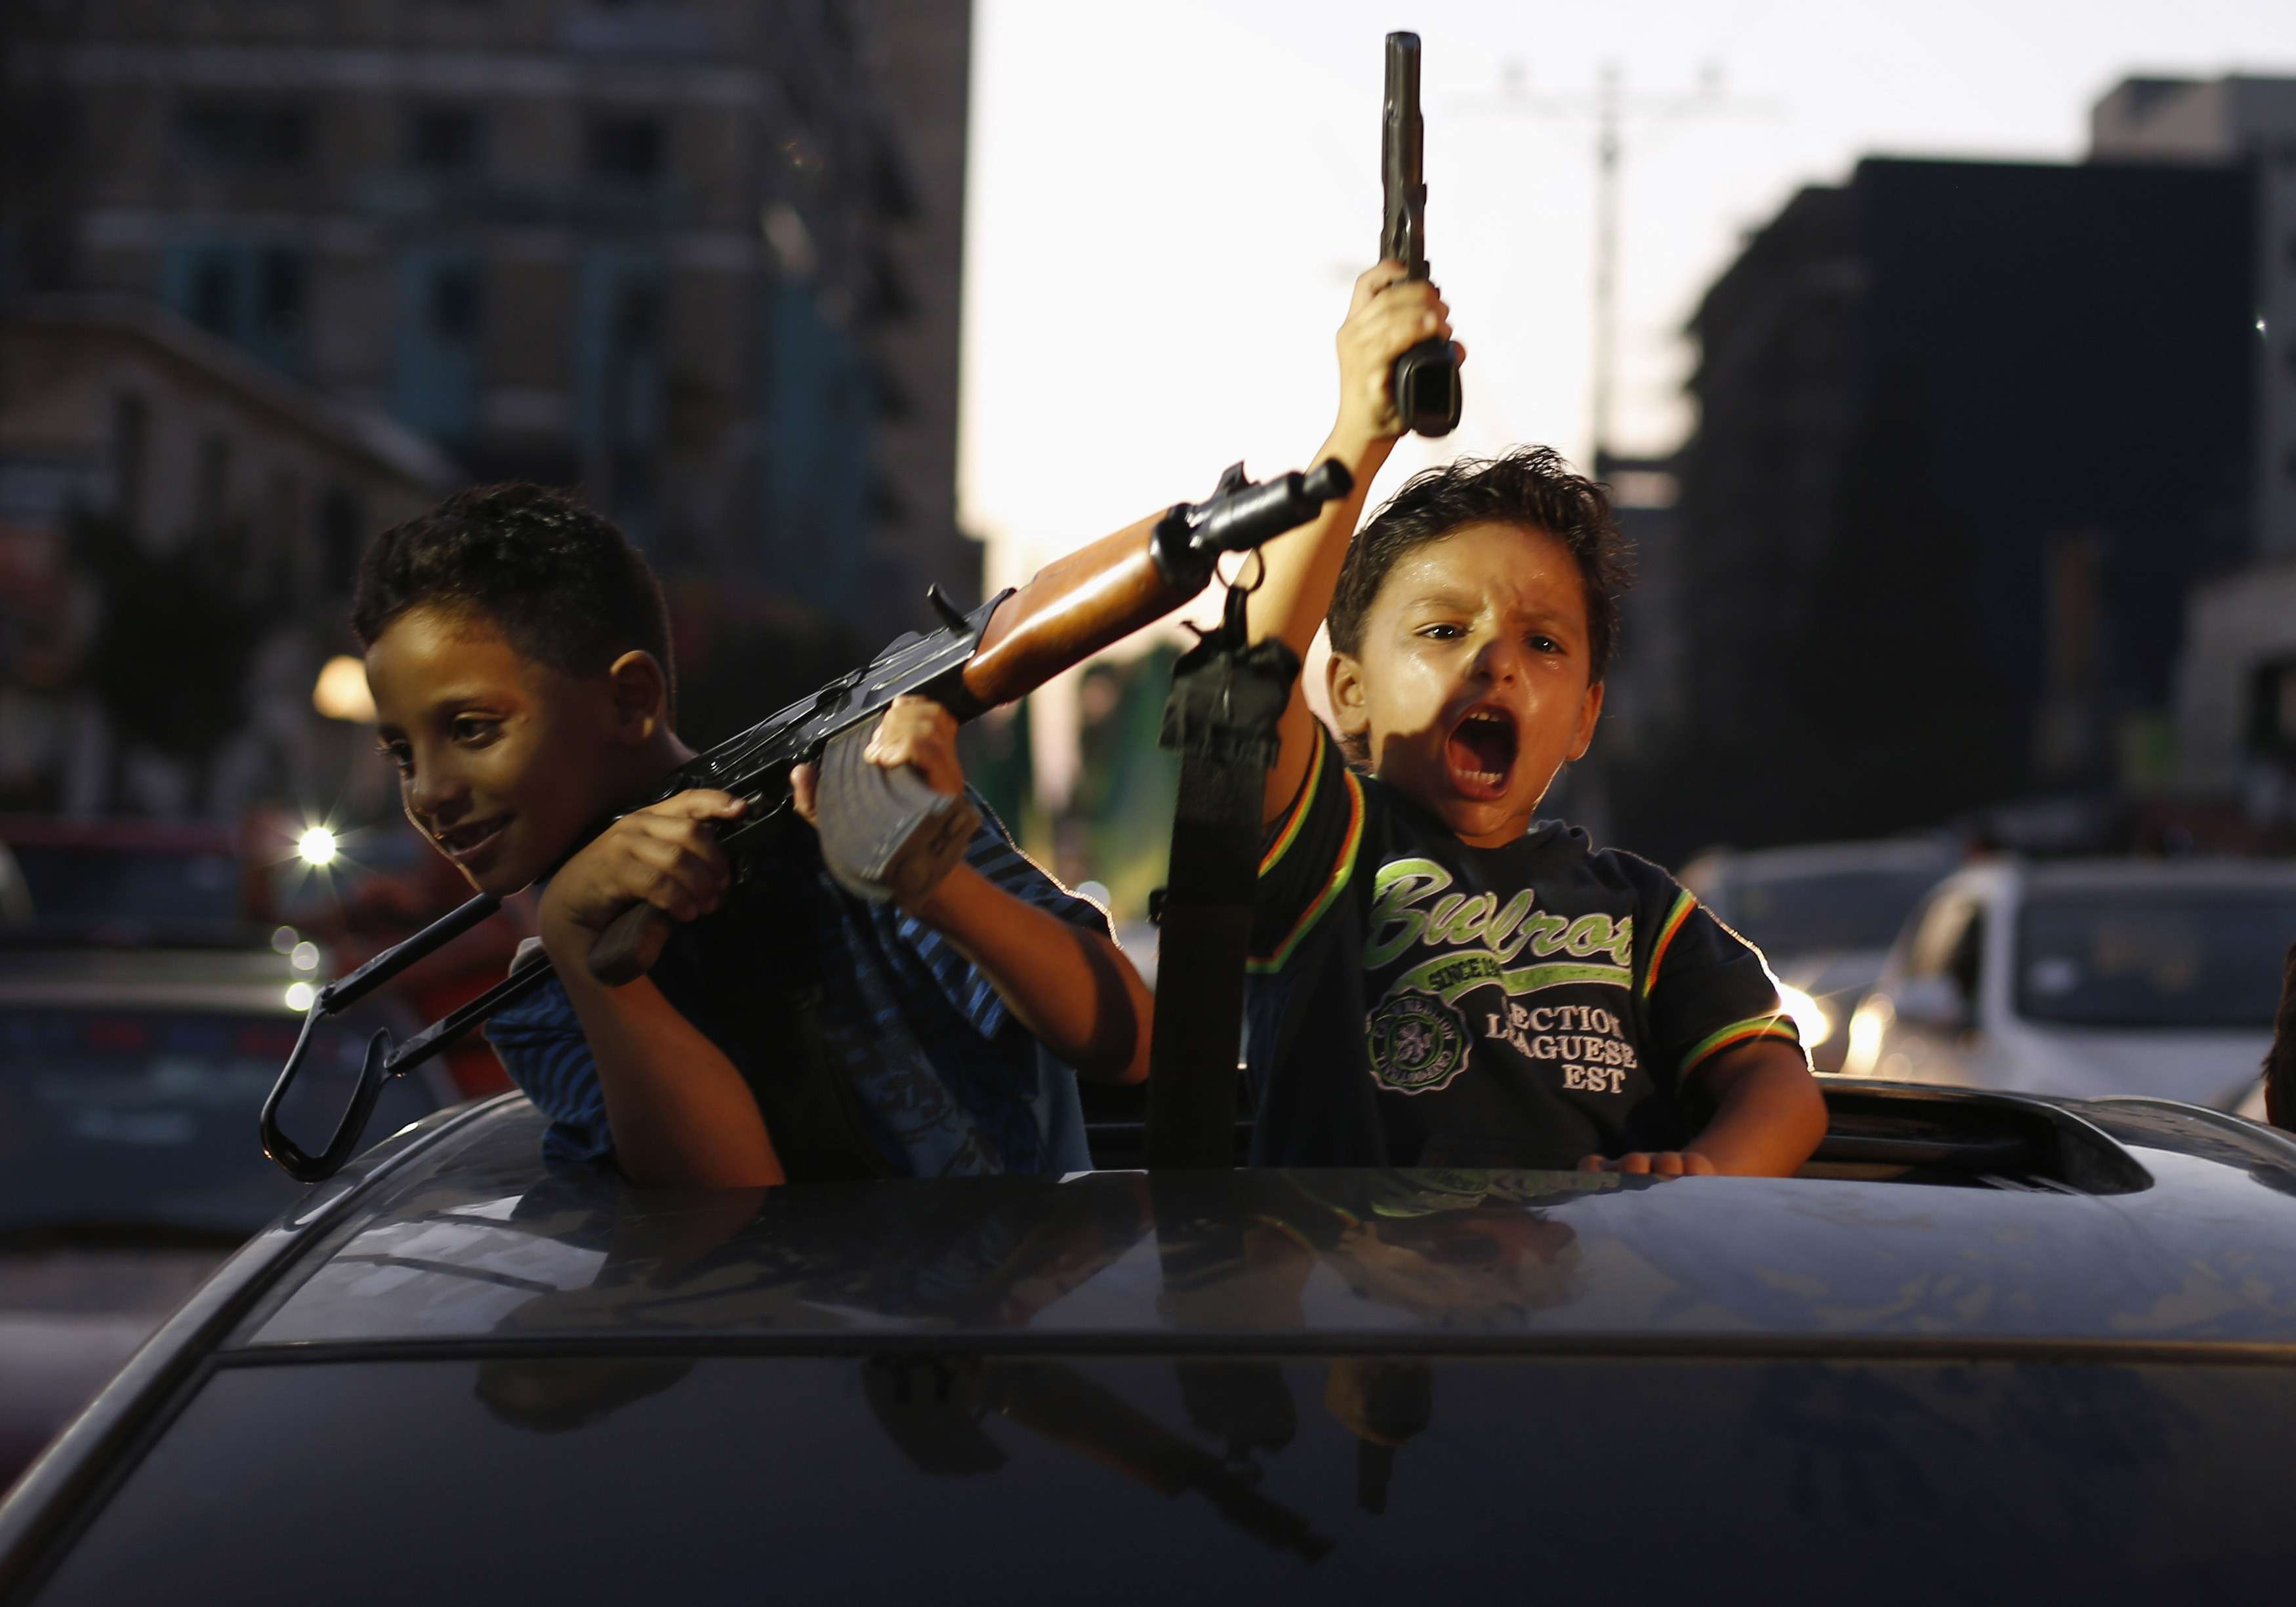 Palestinian children hold guns as they celebrate with others what they said was a victory over Israel, following a ceasefire in Gaza City August 26, 2014. Israel has accepted an Egyptian proposal for a Gaza ceasefire, a senior Israeli official said on Tuesday. Egyptian and Palestinian officials said the truce was to take effect at 7 pm (1600 GMT). REUTERS/Suhaib Salem (GAZA - Tags: POLITICS CIVIL UNREST CONFLICT TPX IMAGES OF THE DAY) Foto: SUHAIB SALEM/REUTERS